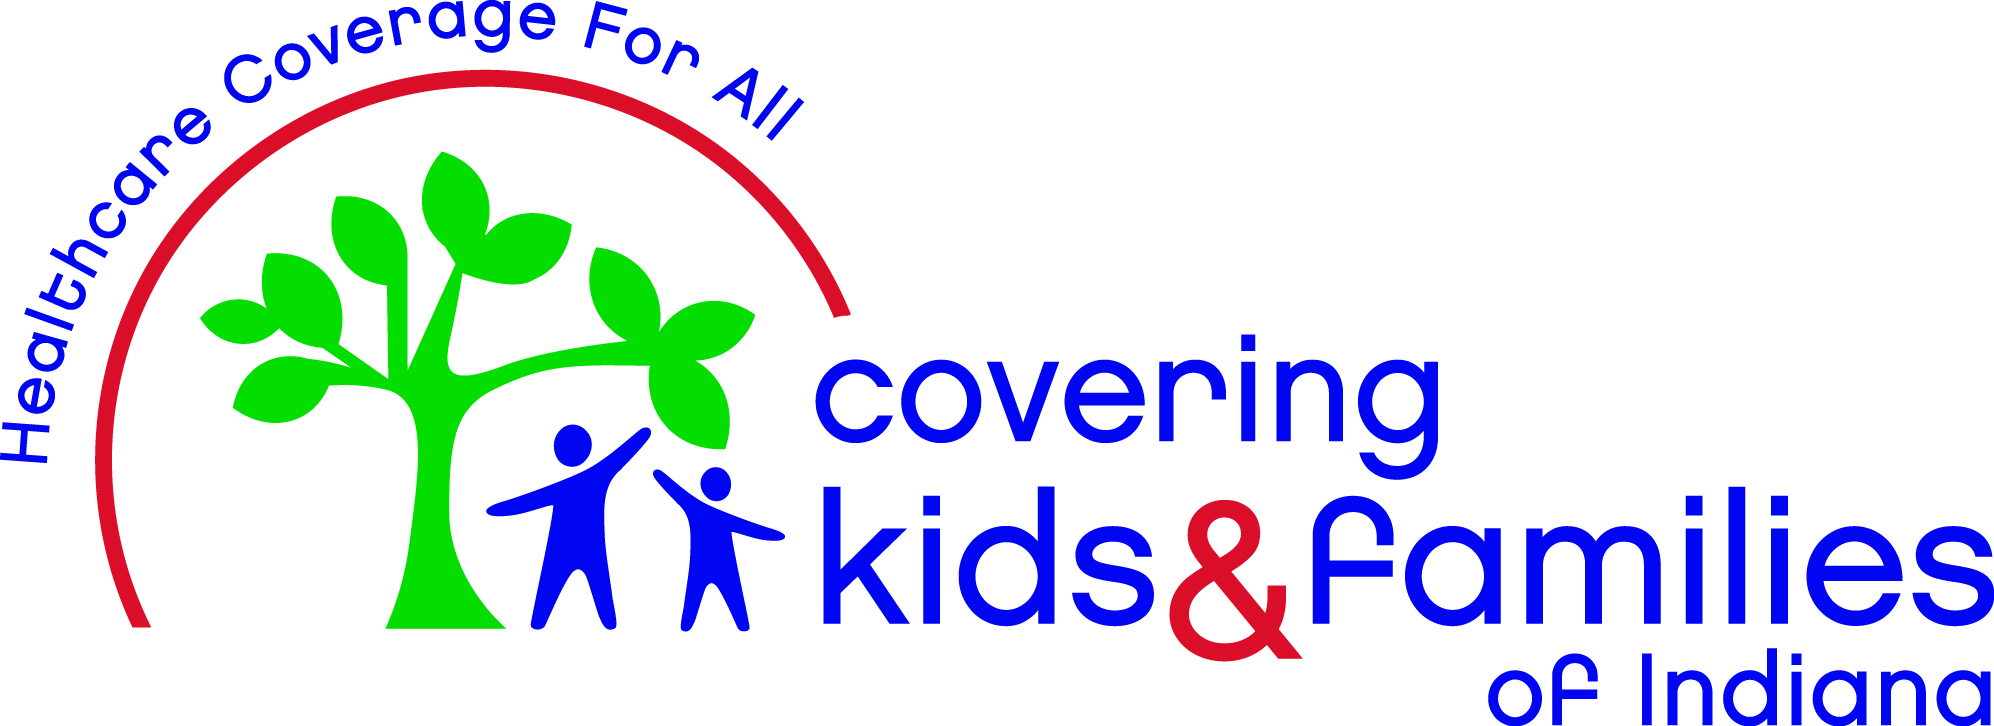 covering-kids-families-logo